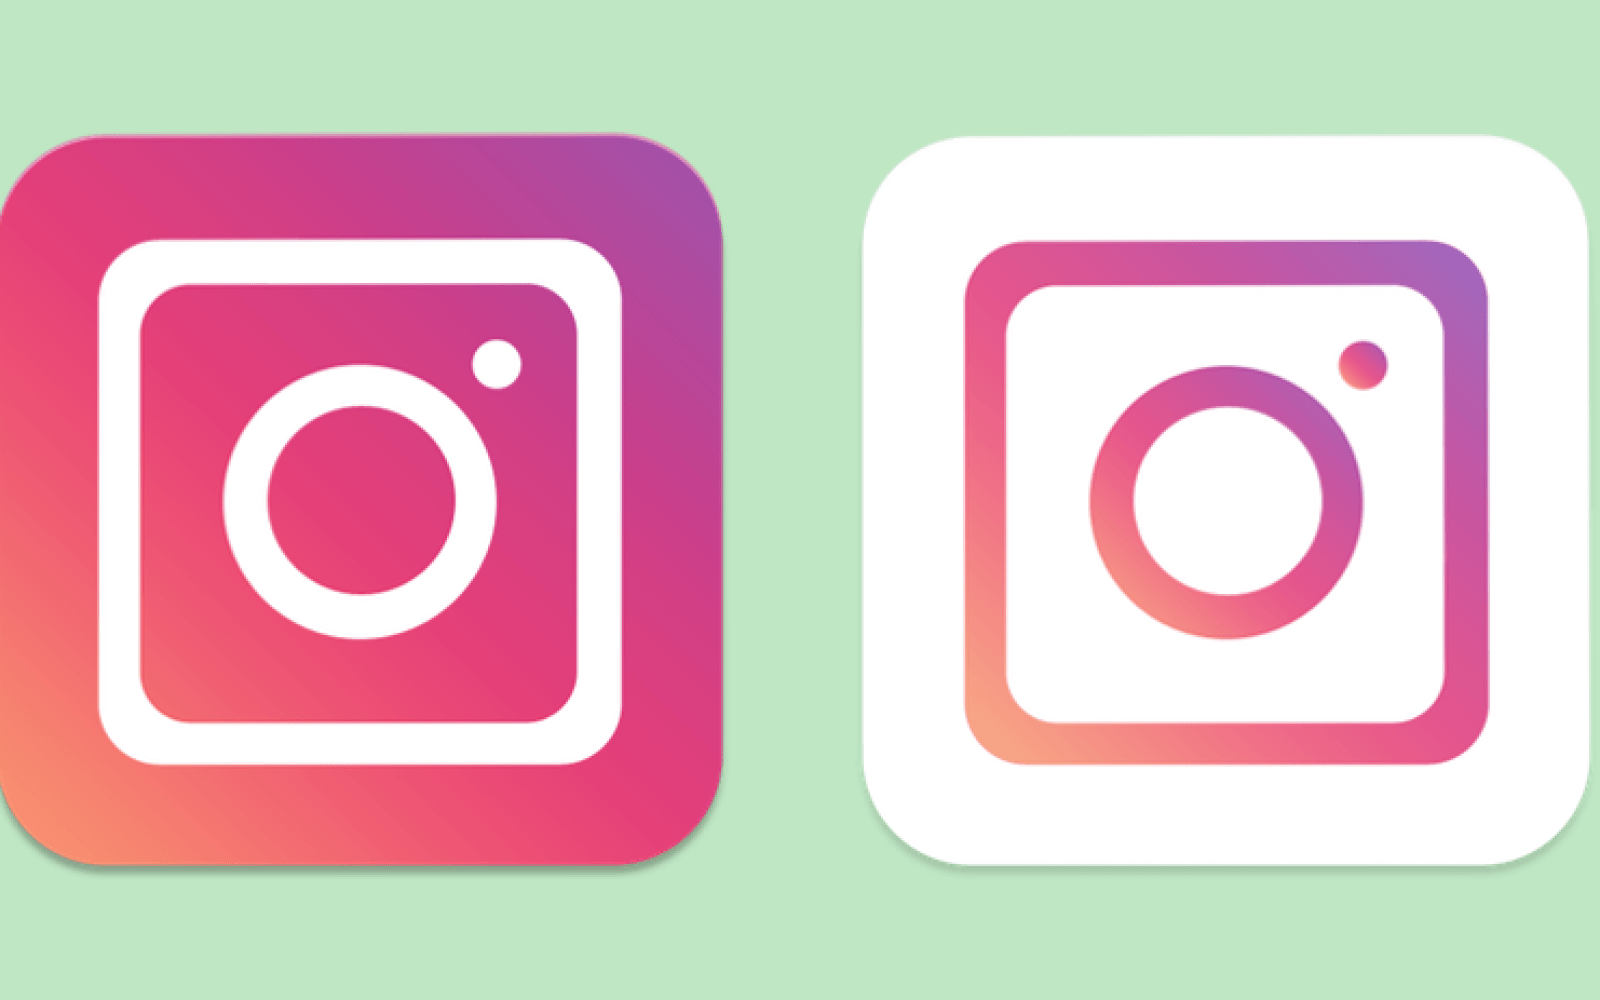 How-To: Not happy with the new Instagram icon? Swap it with one of these icons on Android